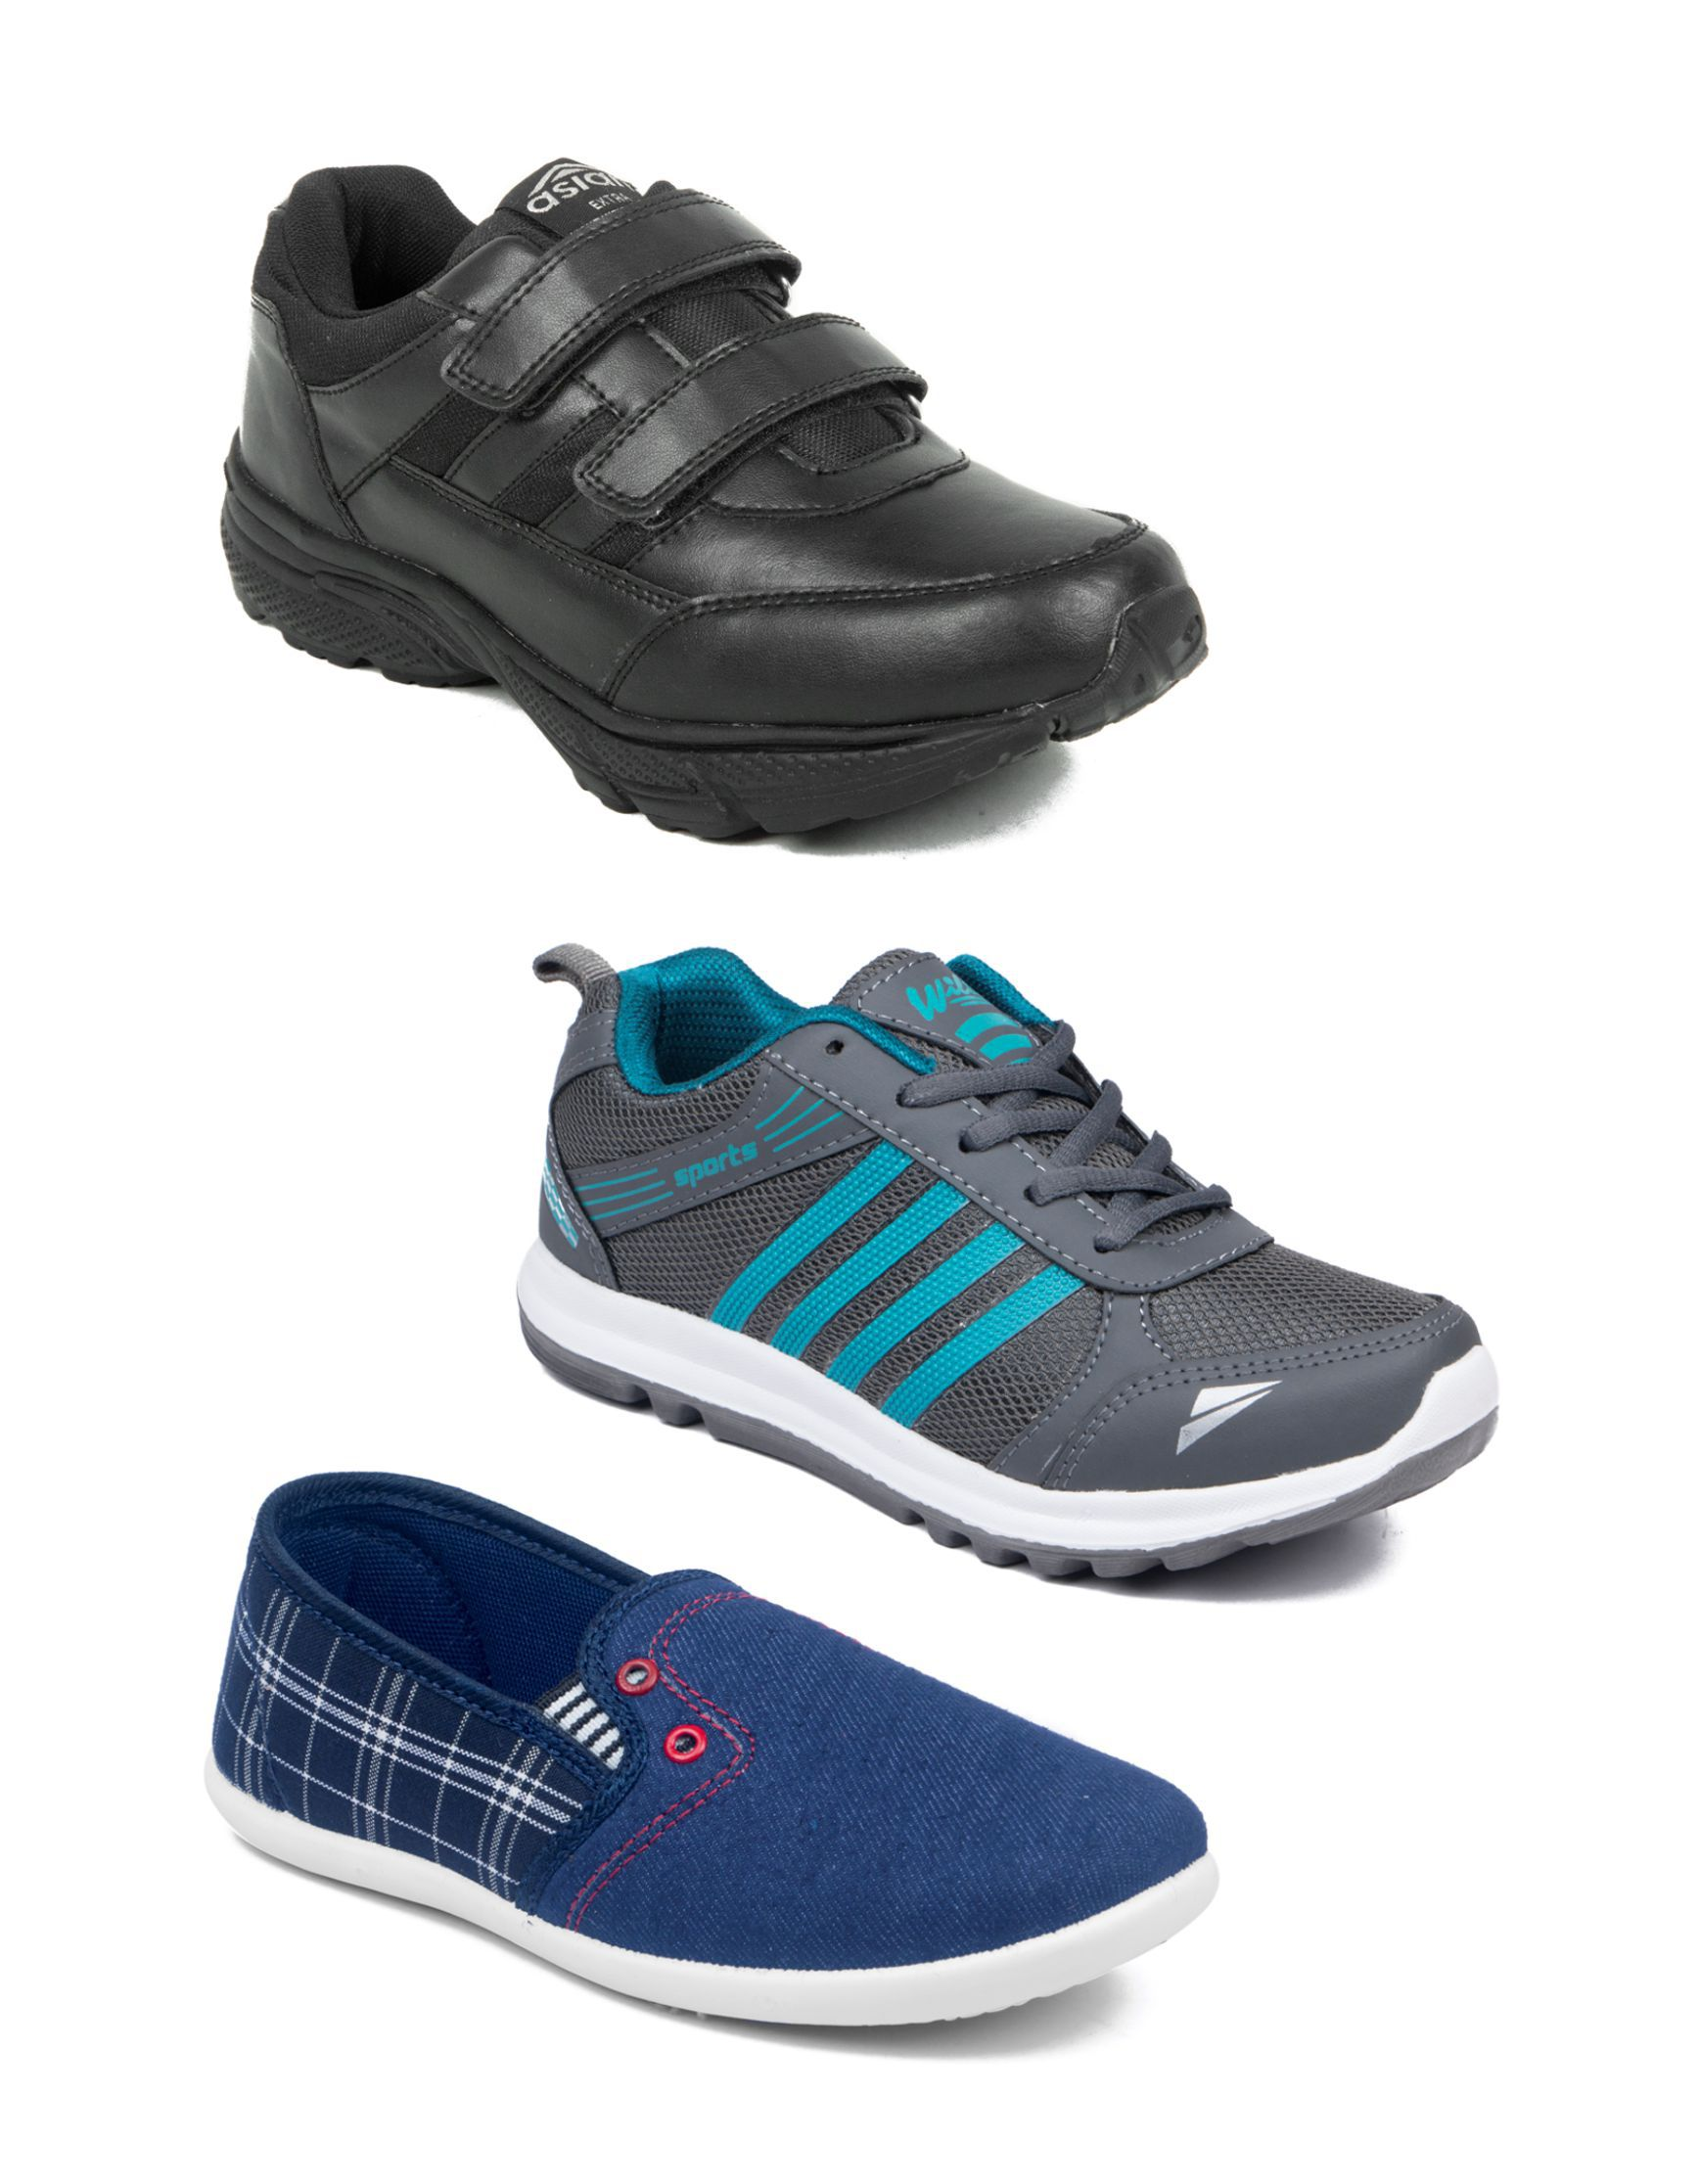 41bfbba2cd1c ASIAN KIDS SHOE COMBO Price in India- Buy ASIAN KIDS SHOE COMBO Online at  Snapdeal